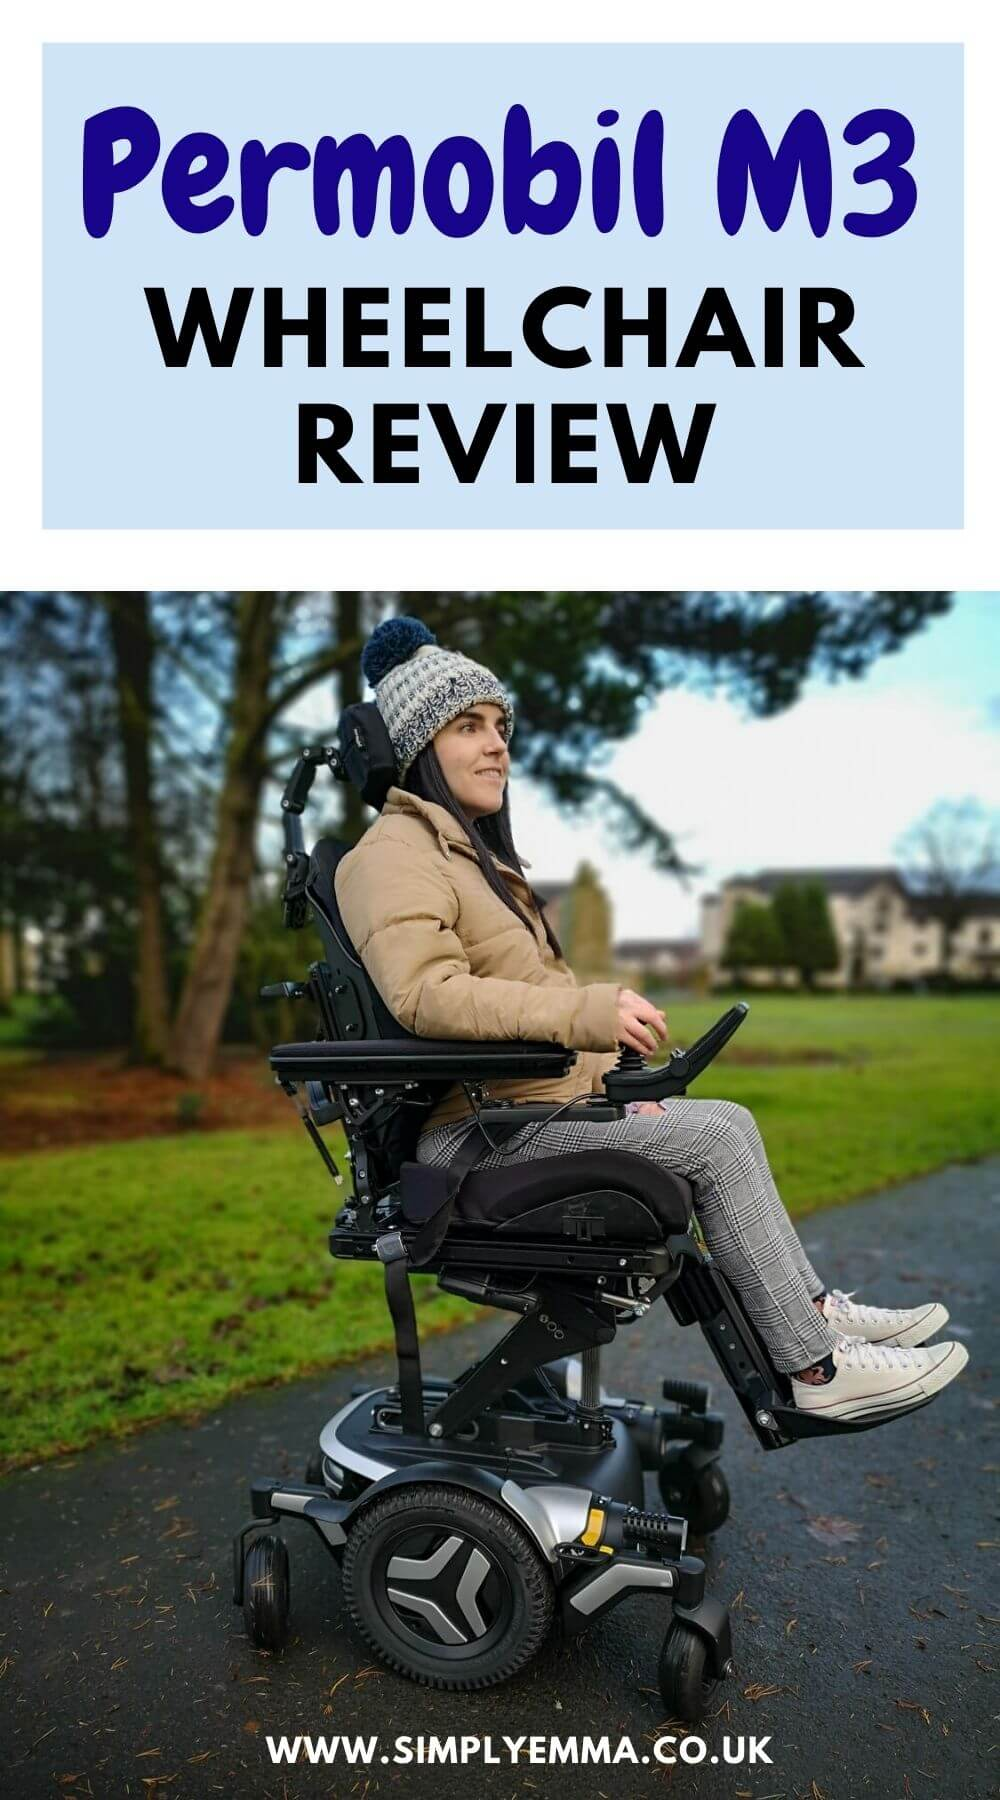 """Emma, a wheelchair user sitting in a black and silver Permobil M3 wheelchair in a park. She is wearing a woolly hat, puffy jacket, black and white check trousers and white converse shoes. The wheelchair seat is elevated. Emma is smiling. Text reads """"Permobilo M3 Wheelchair Review. www.simplyemma.co.uk"""""""